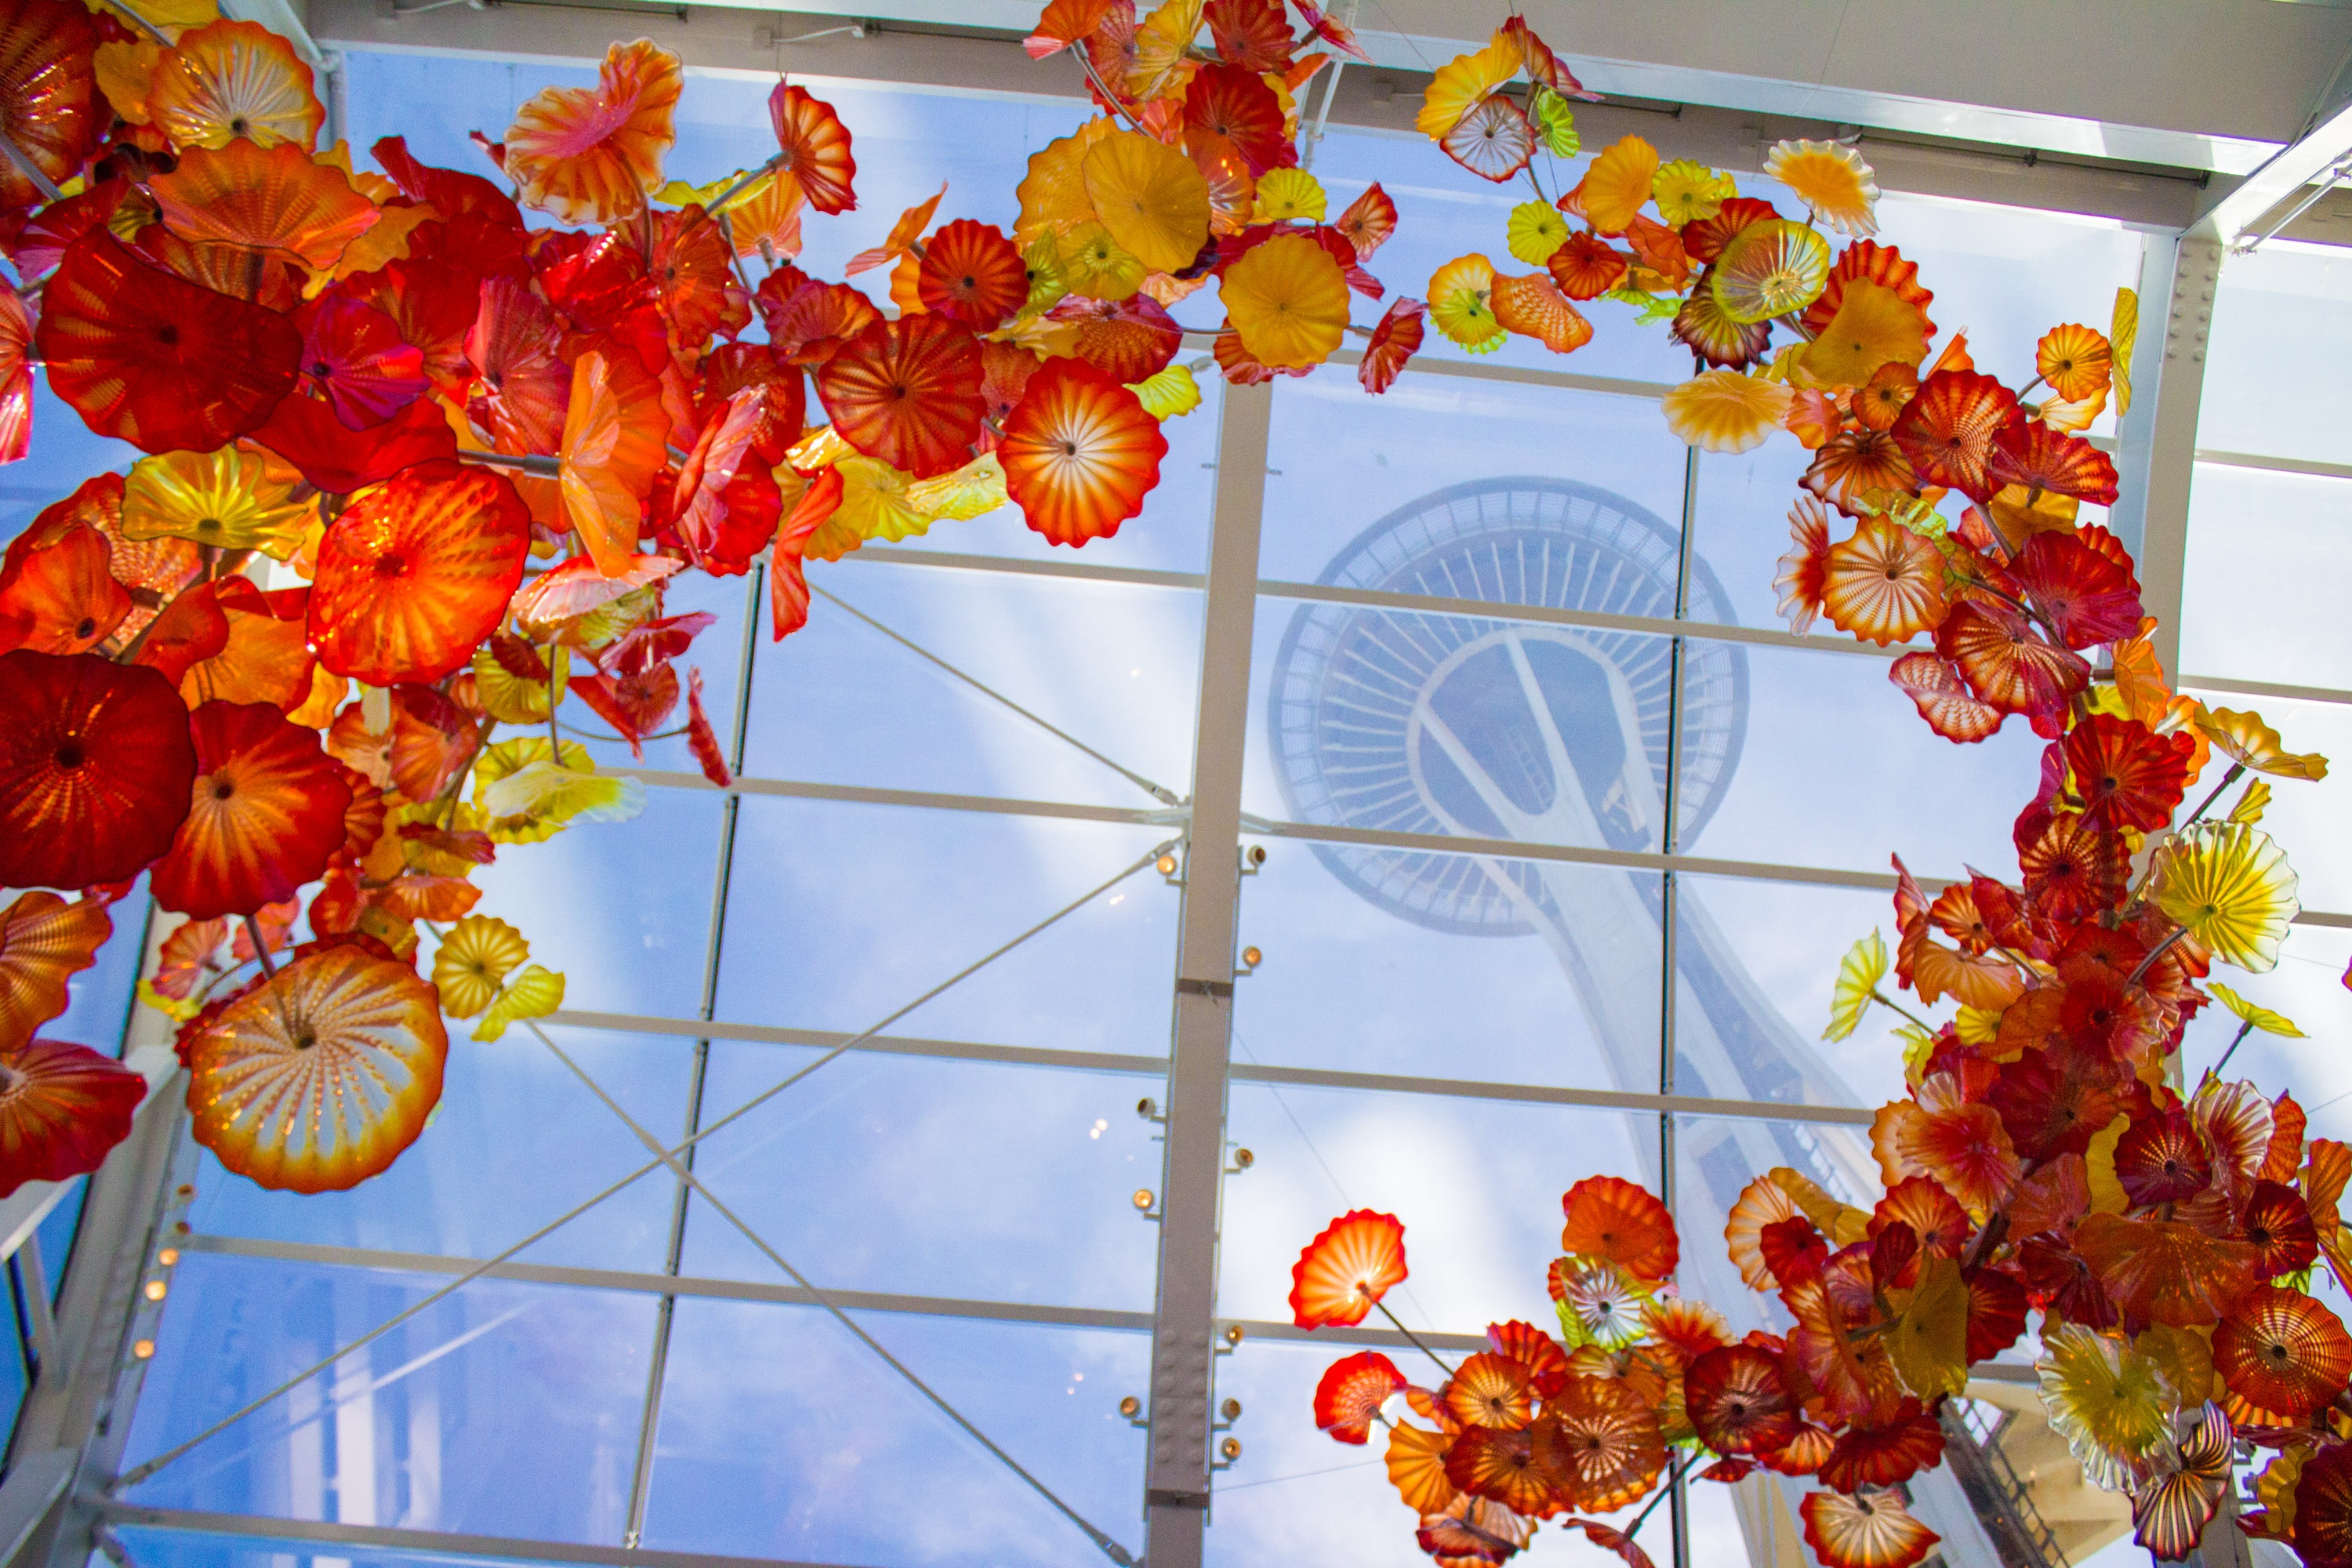 chihuly garden and glass - photo #18